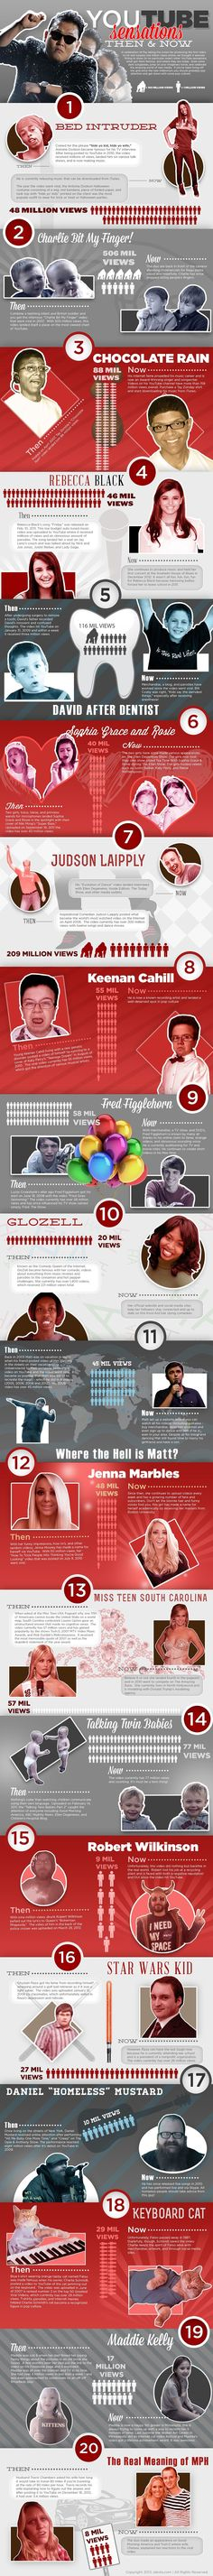 YouTube Sensations Then And Now [infographic]